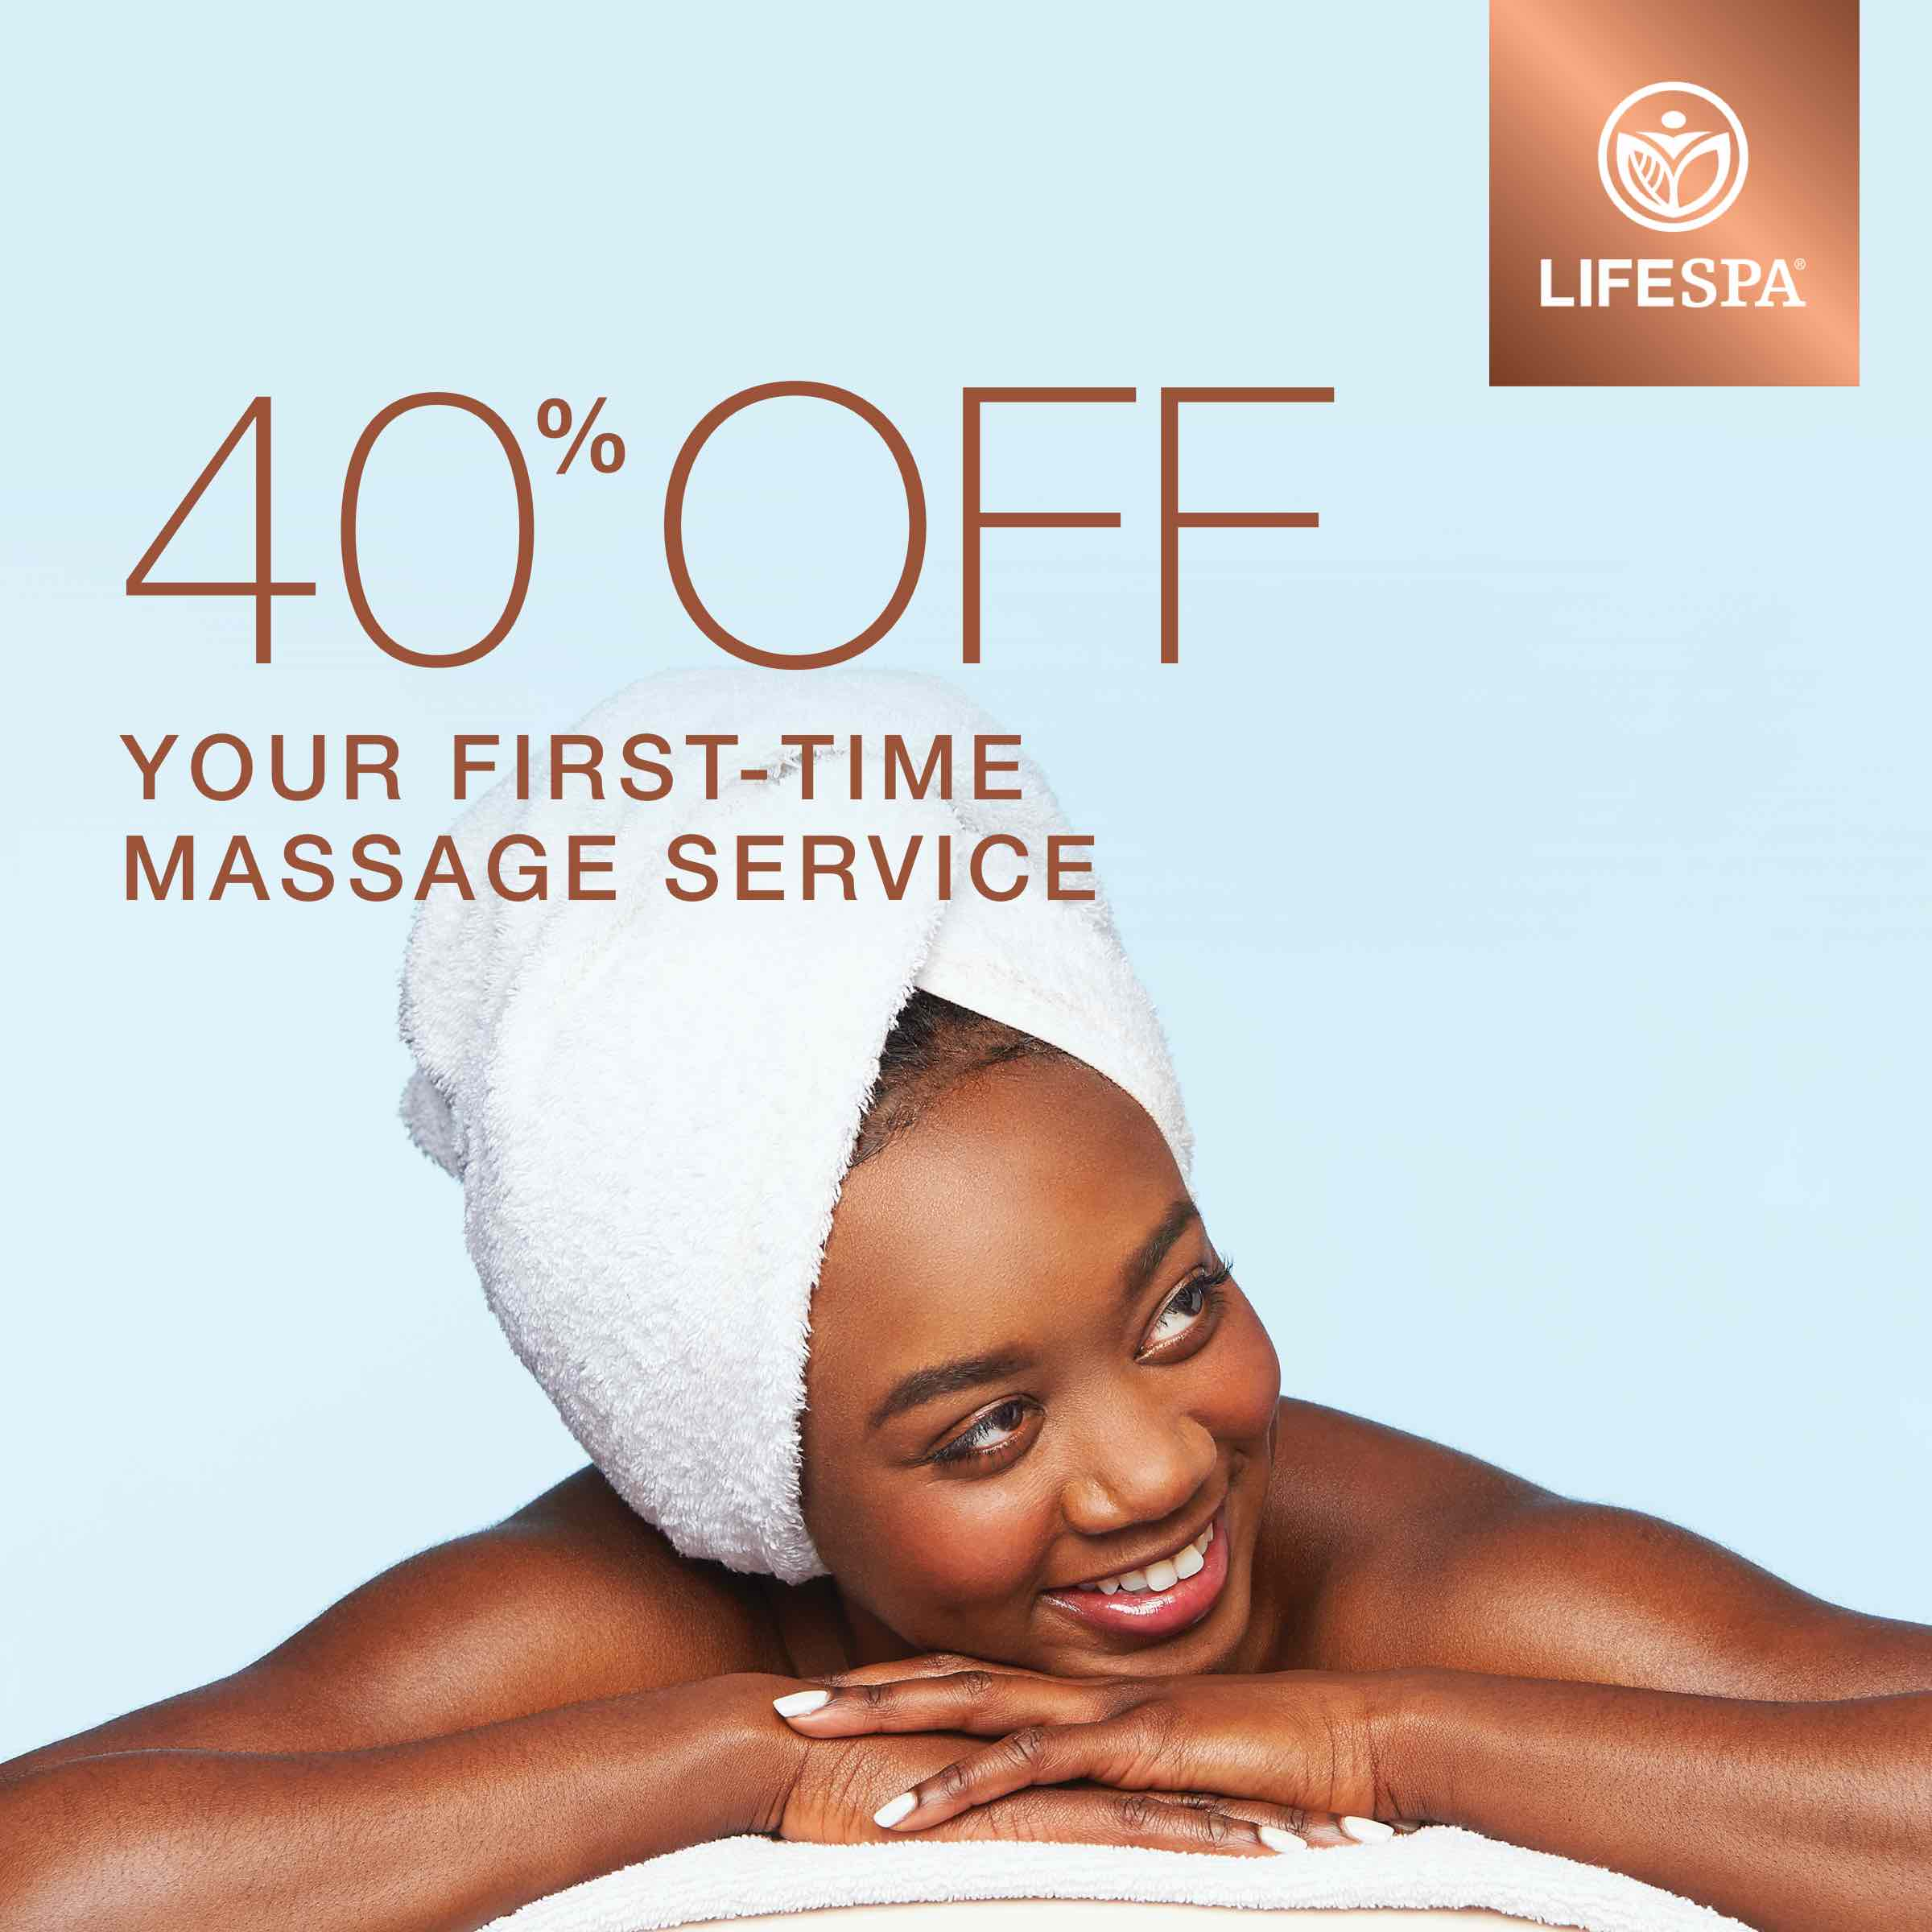 40% off your first-time massage service